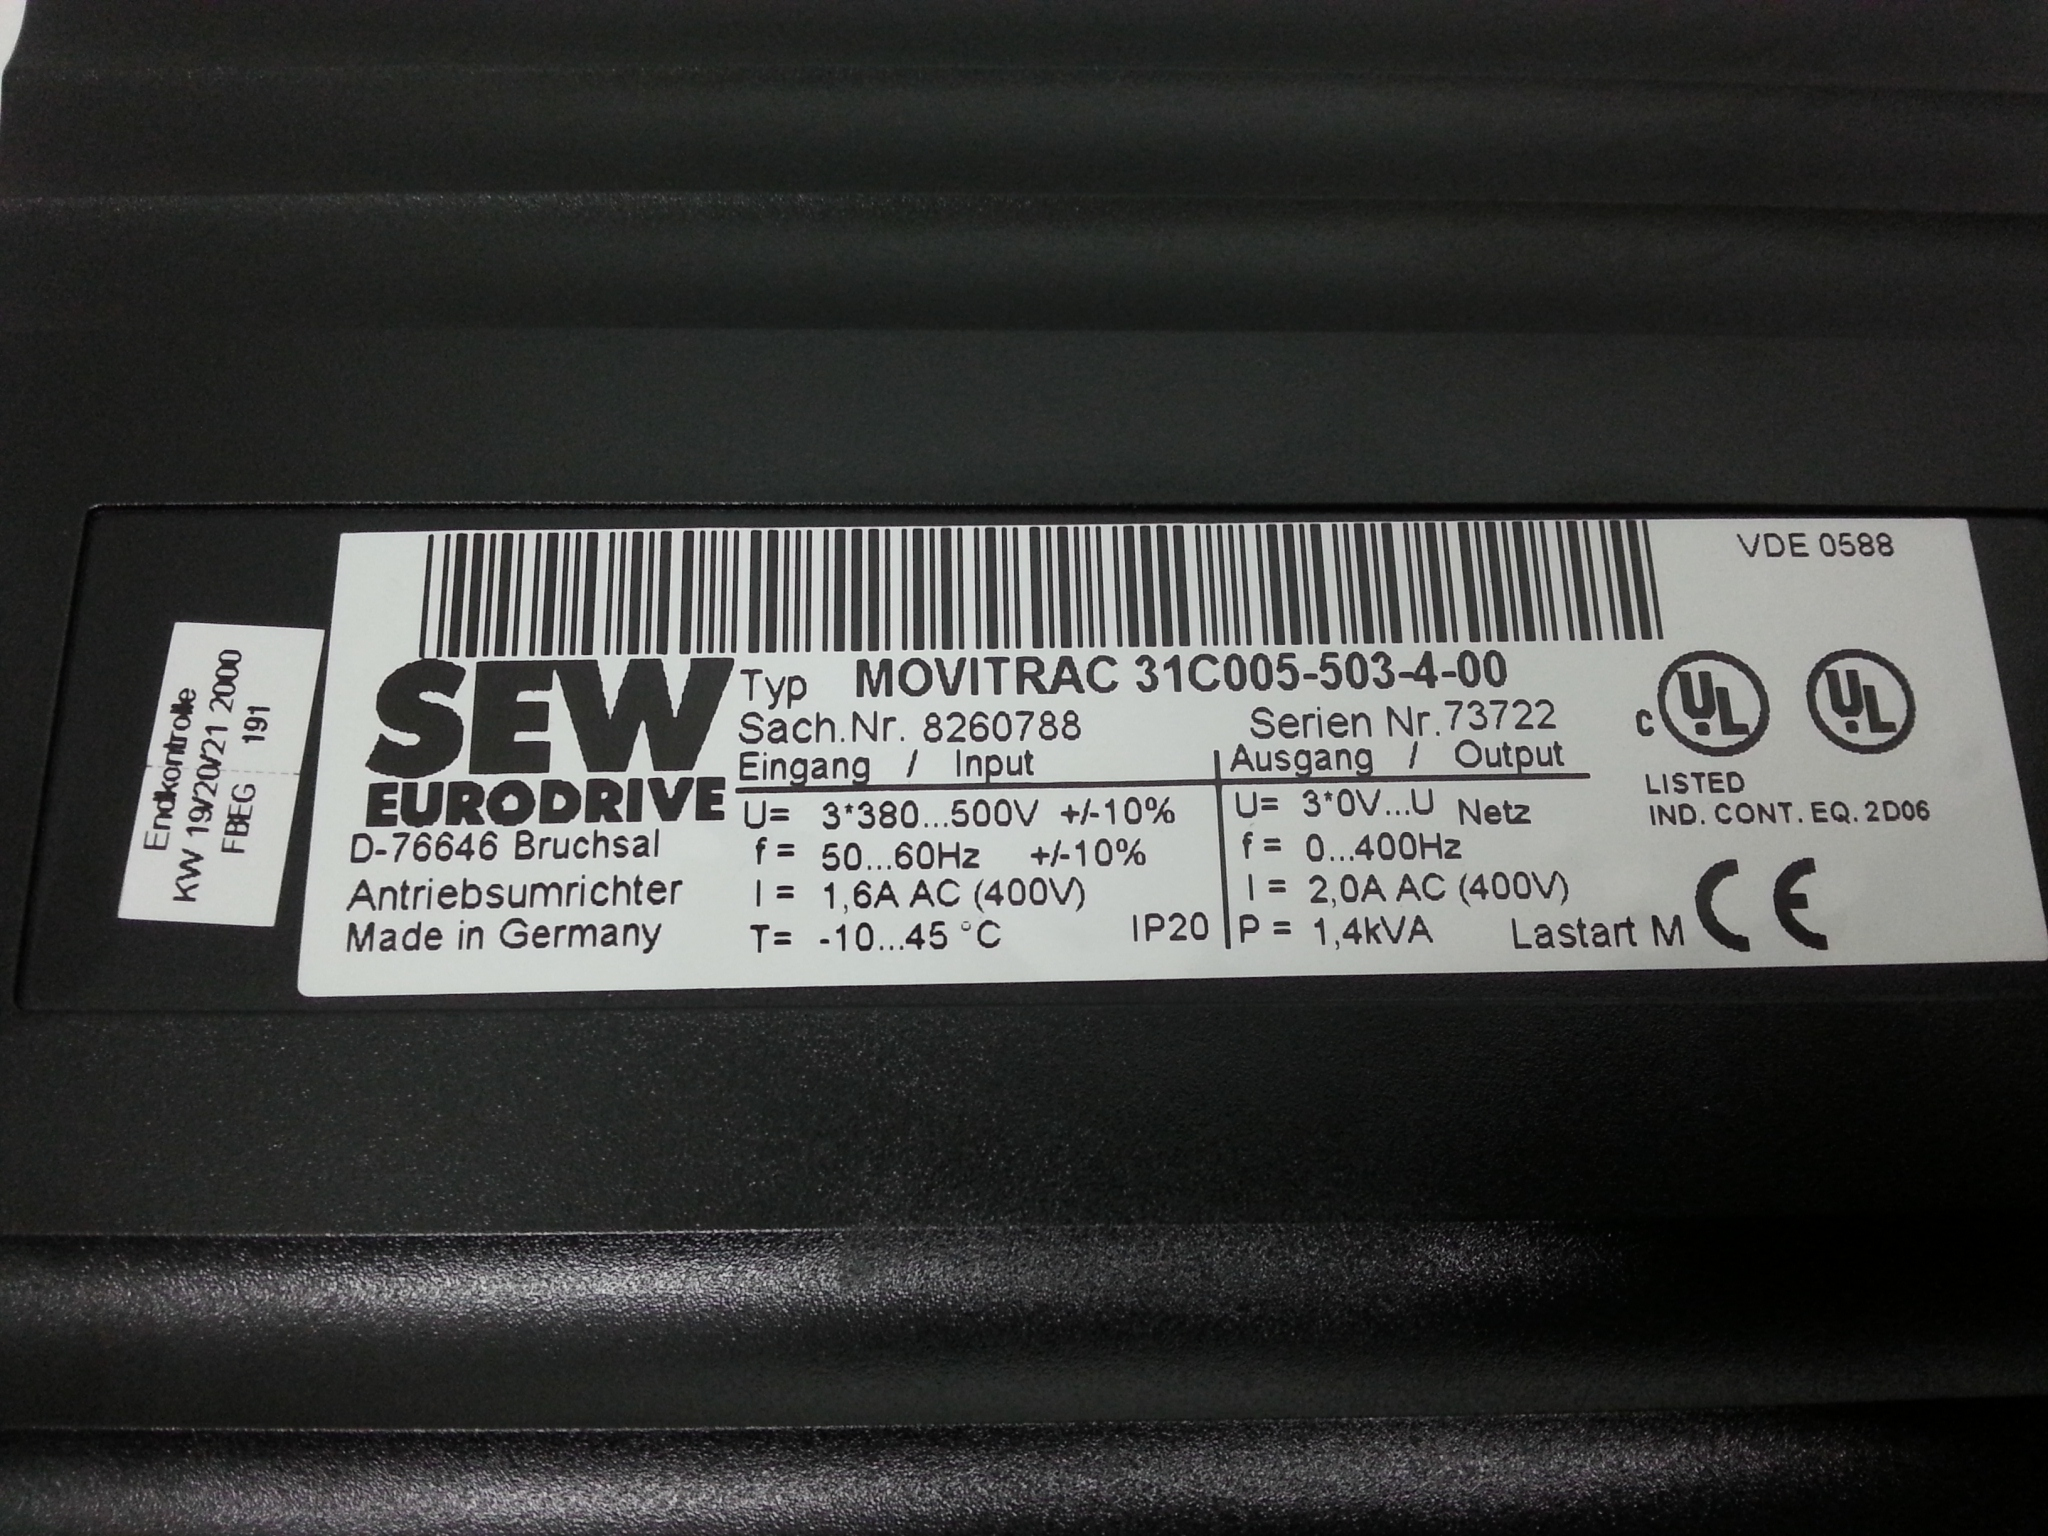 MC31C005-503-4-00 SEW Movitrac 31C